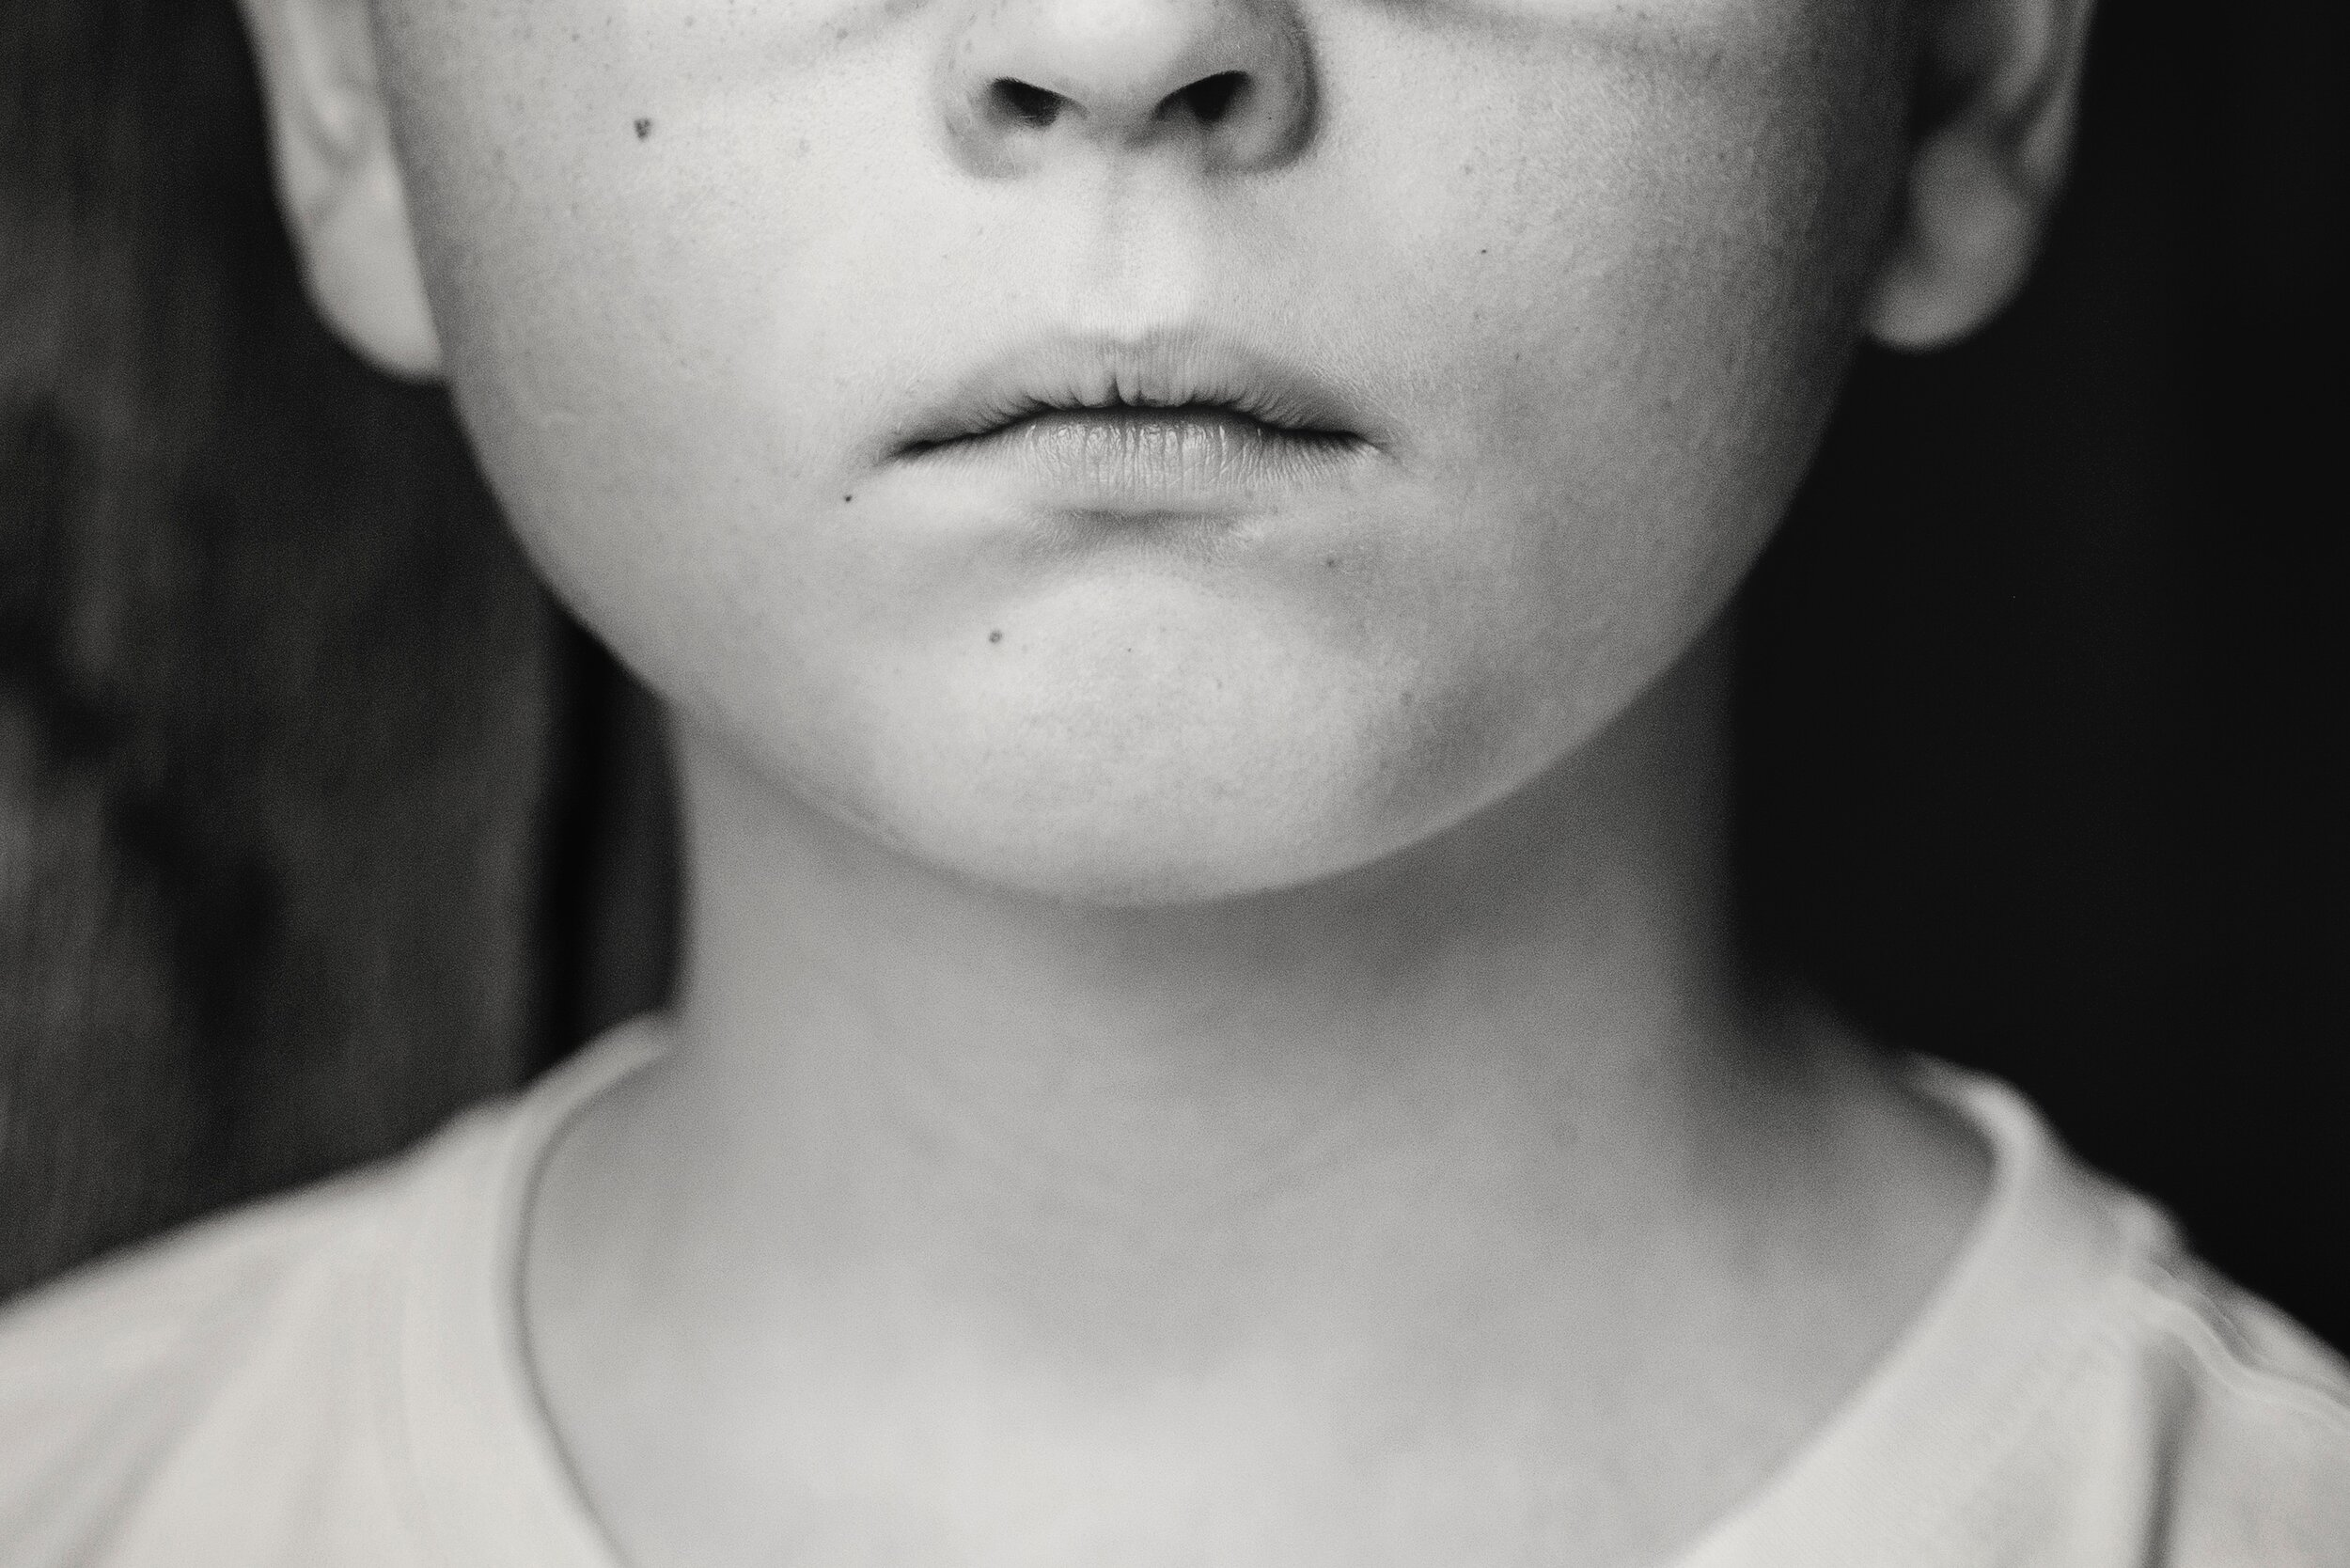 black-and-white-blur-child-568024.jpg